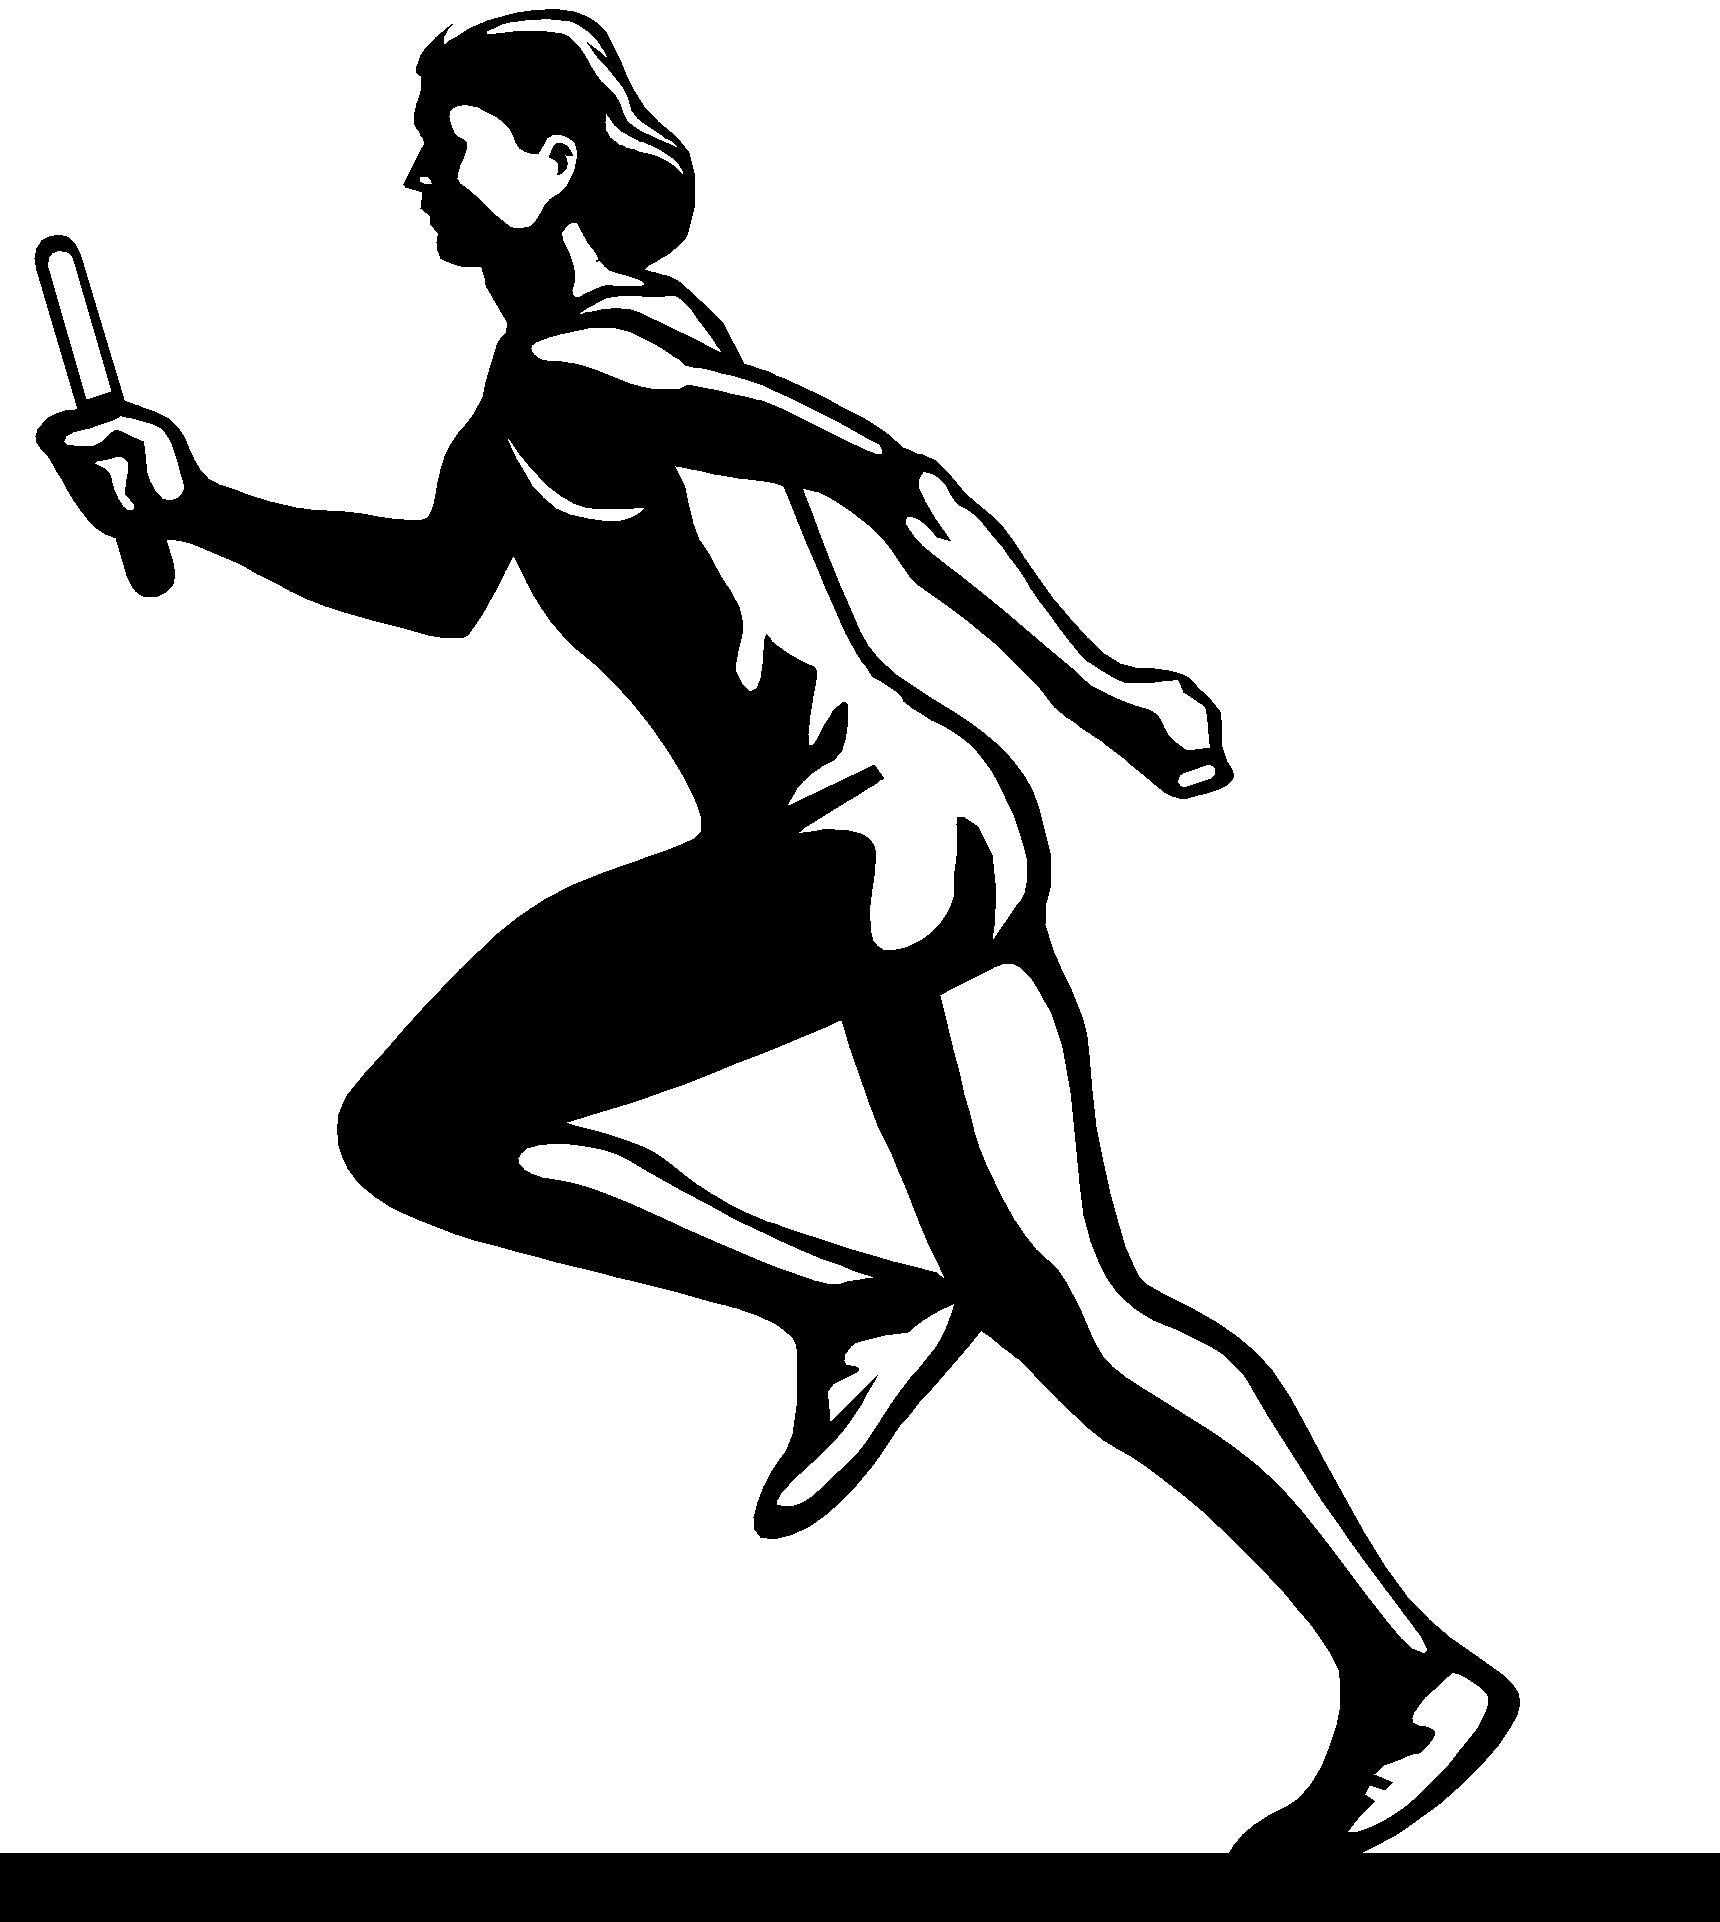 It's just an image of Simplicity Track And Field Drawing